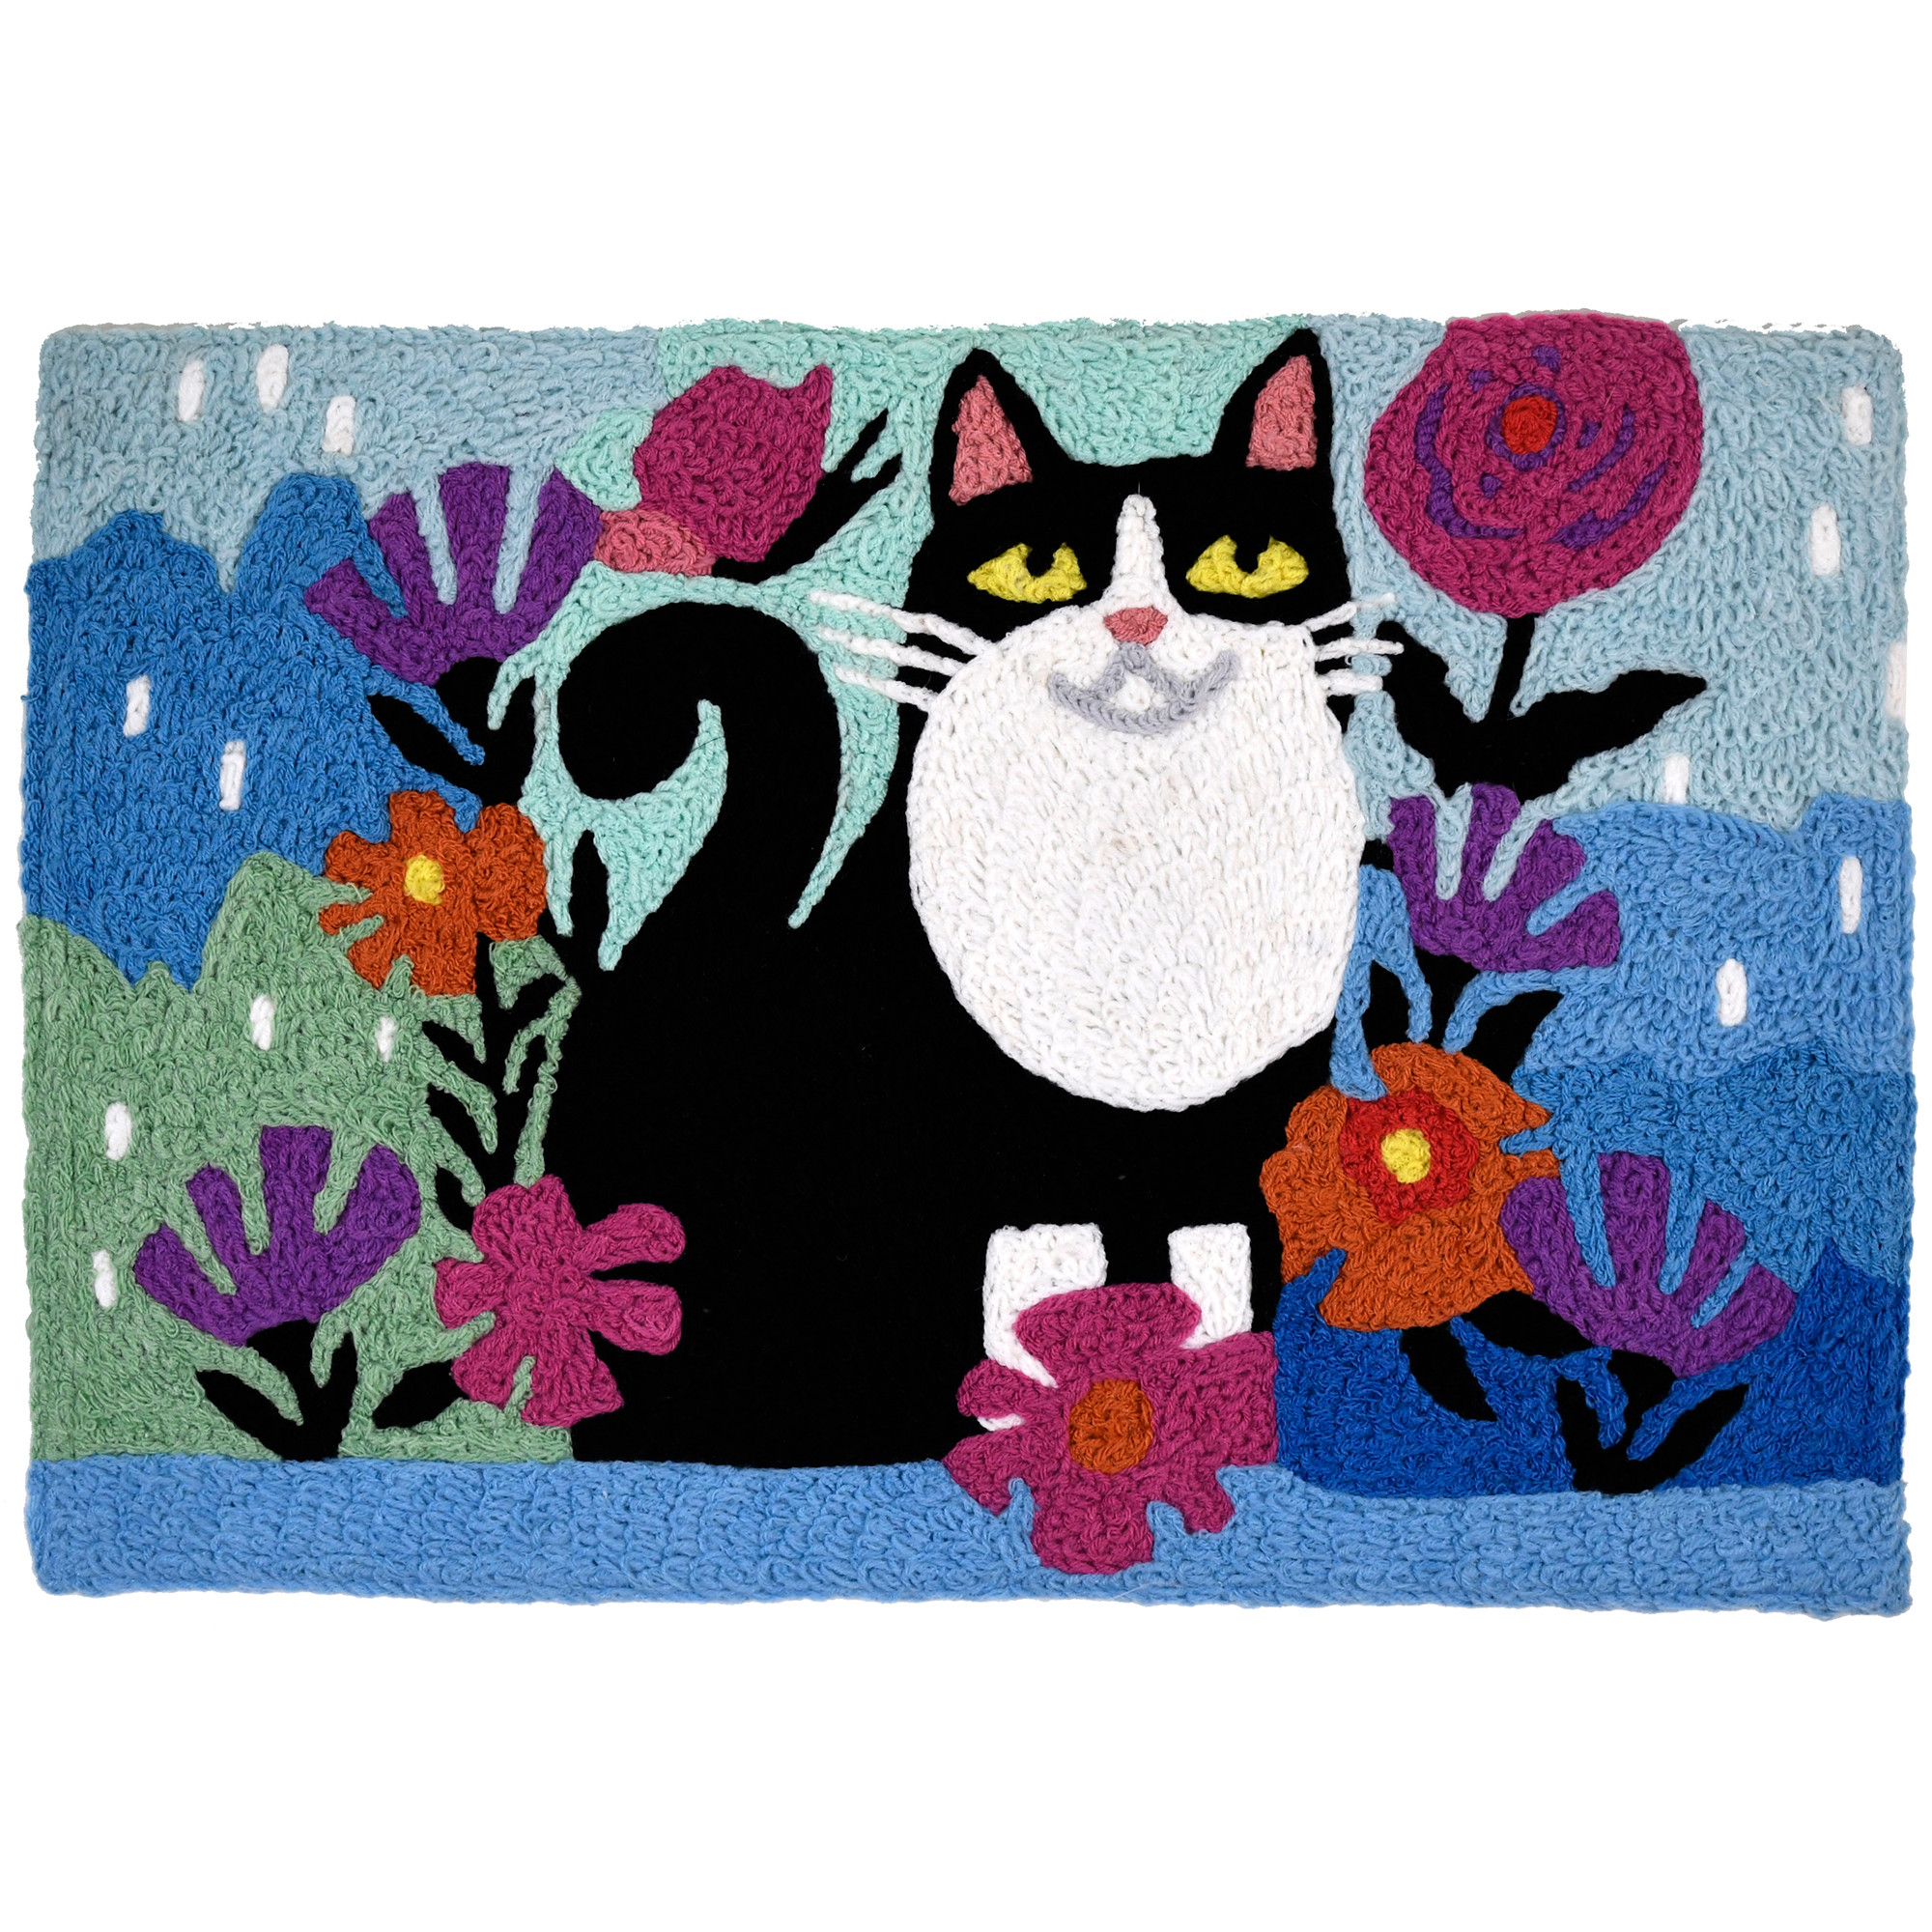 Indoor/outdoor rug design makes this smiling feline a welcomed addition to your space. Her black fur gleams against the blue cityscape and bright blooms of this Jellybean® accent rug. Machine washable durability ensures this rug will bring pet loving smiles for many footsteps to come.